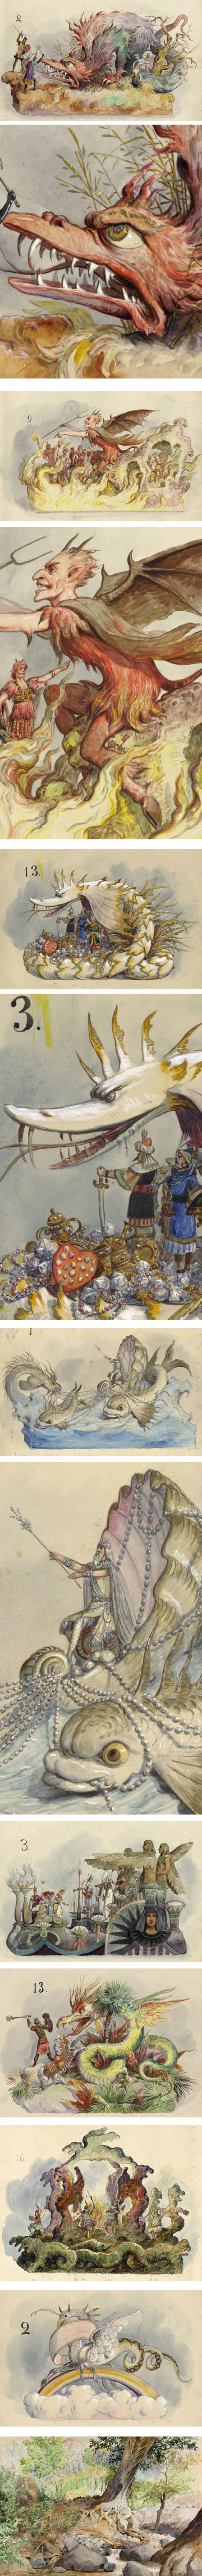 Bror Anders Wikstrom, imaginative float designs of dragons and other, in watercolor